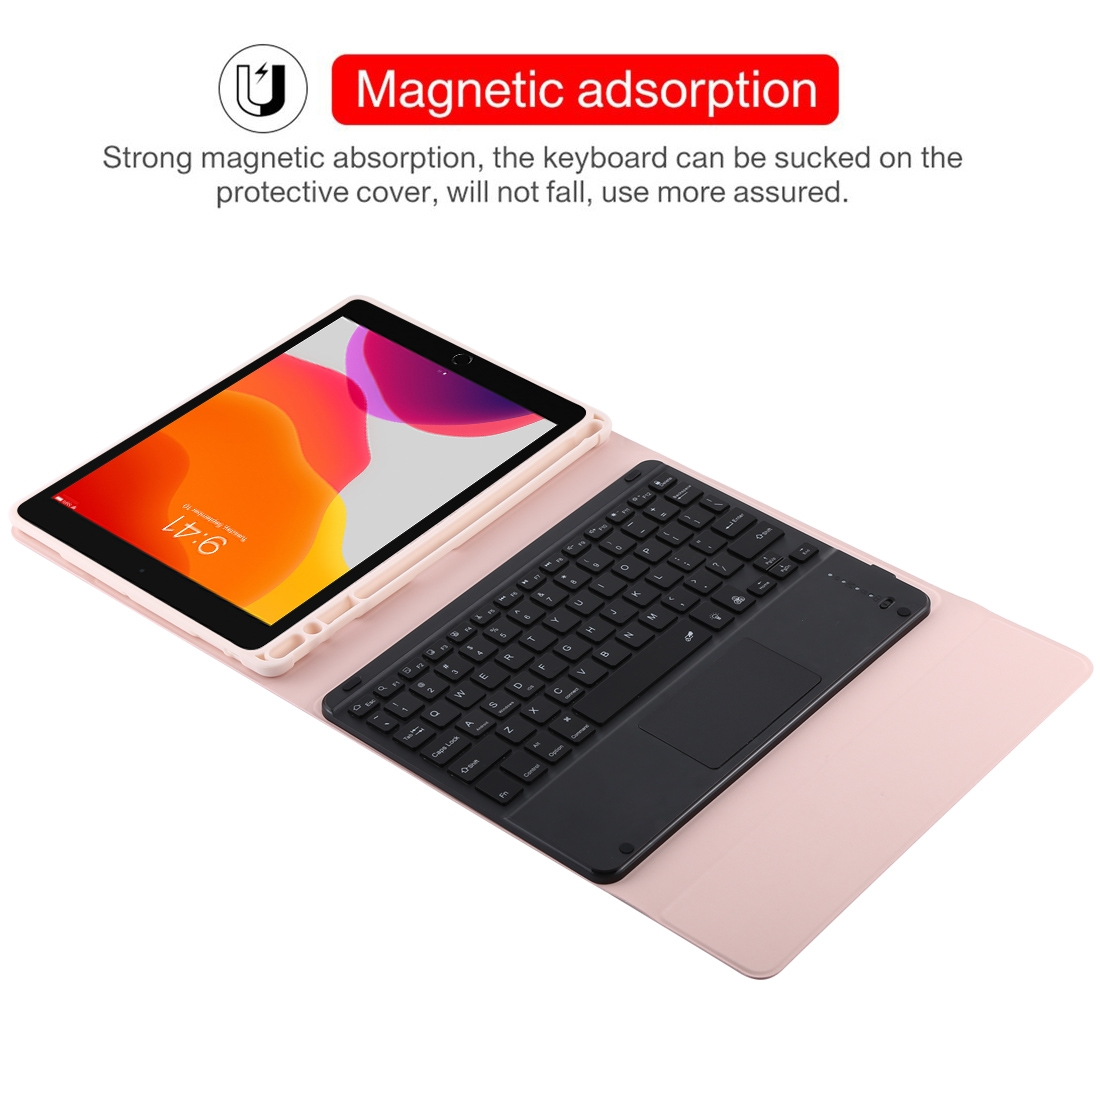 iPad Air Case With Keyboard For iPad 10.2/Air (2019) Leather Case With Backlit Keyboard (Pink)